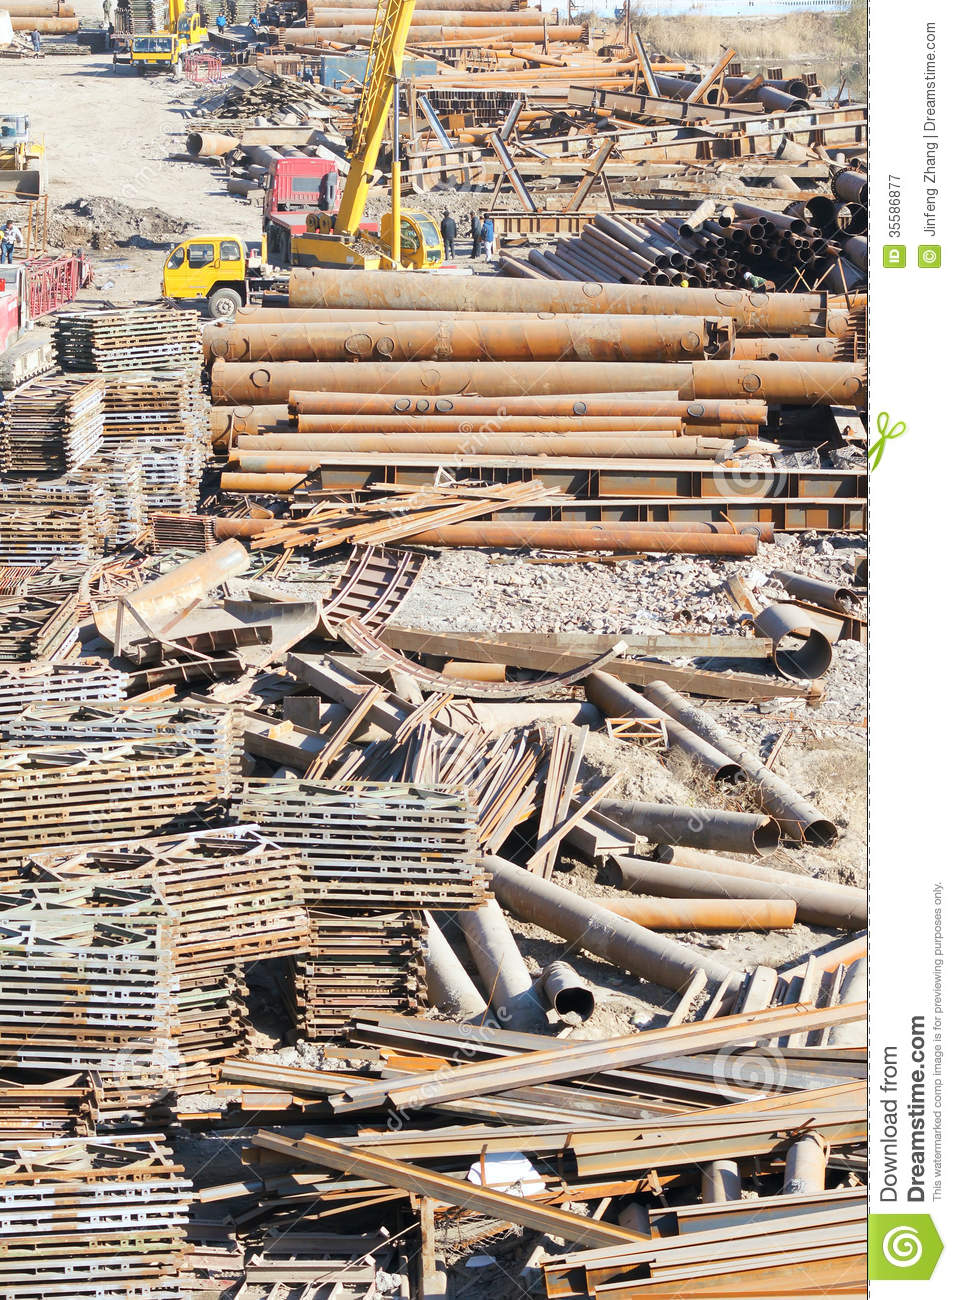 Building Materials Amp Building Supplies : Construction plant royalty free stock photography image